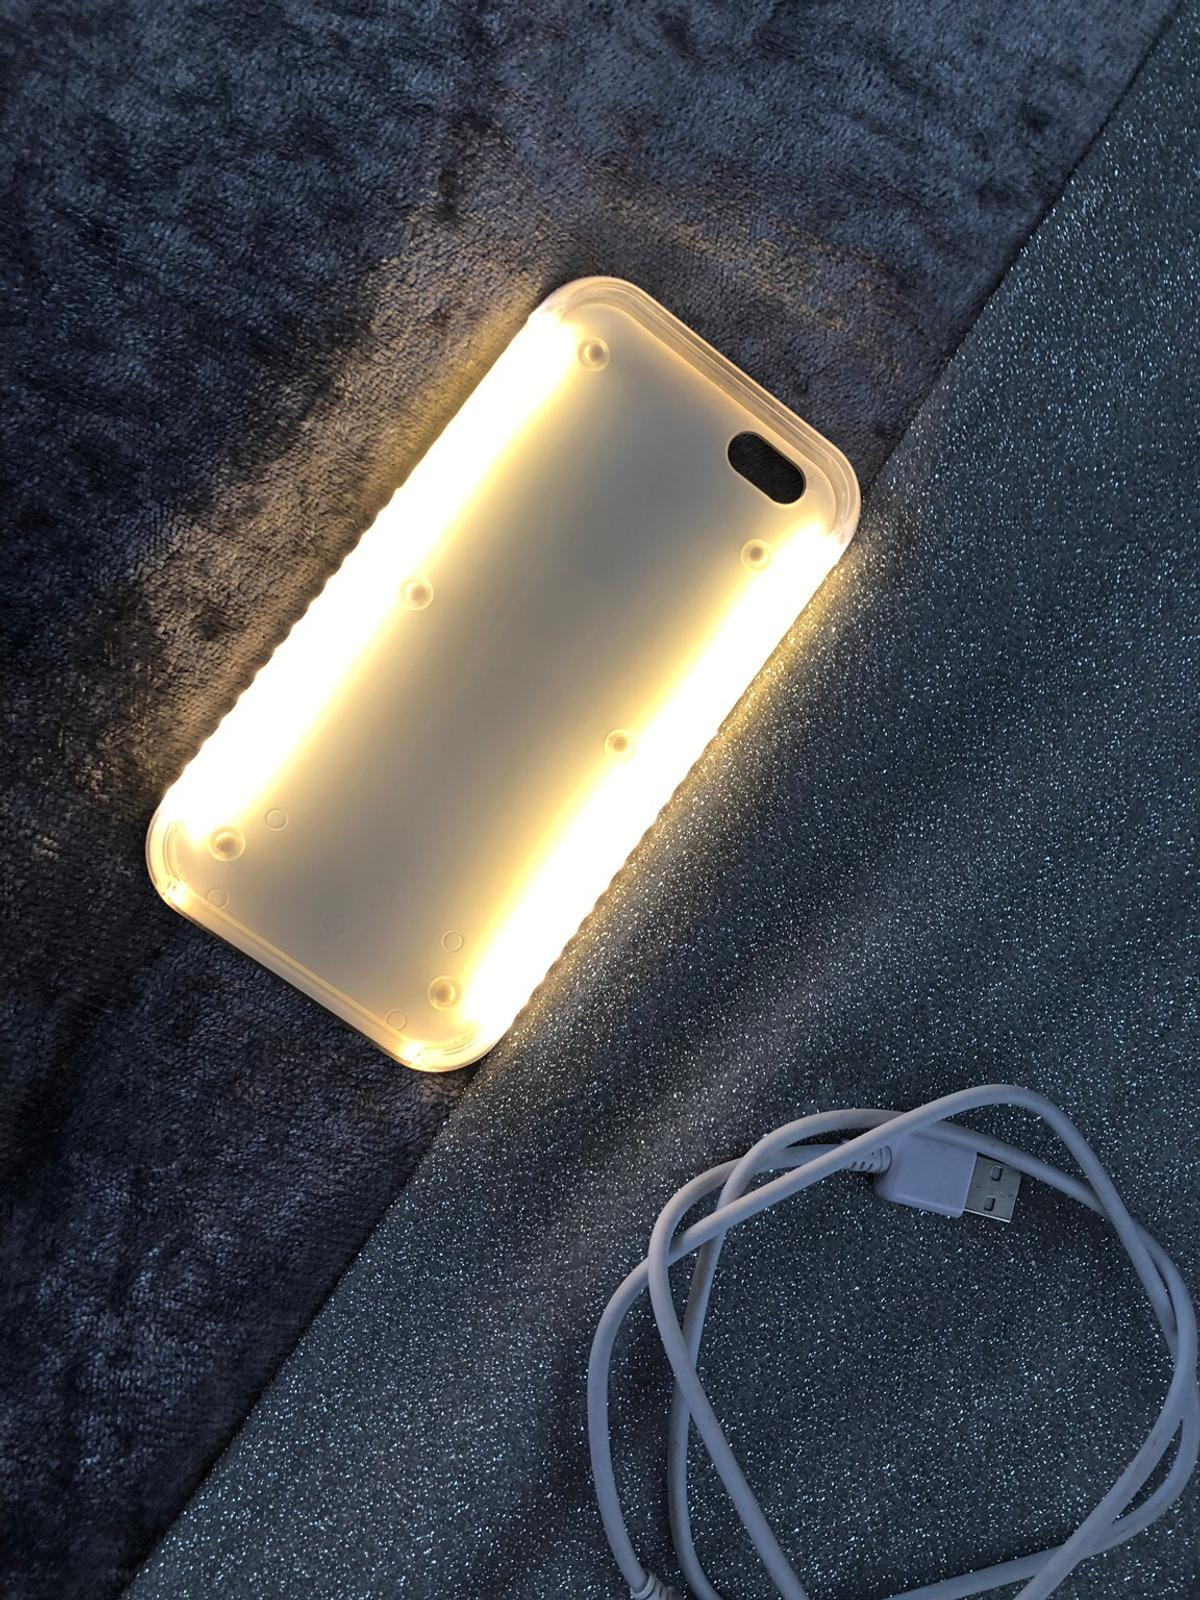 new arrival f36a4 65cb0 Lumee iPhone 6s light up phone case